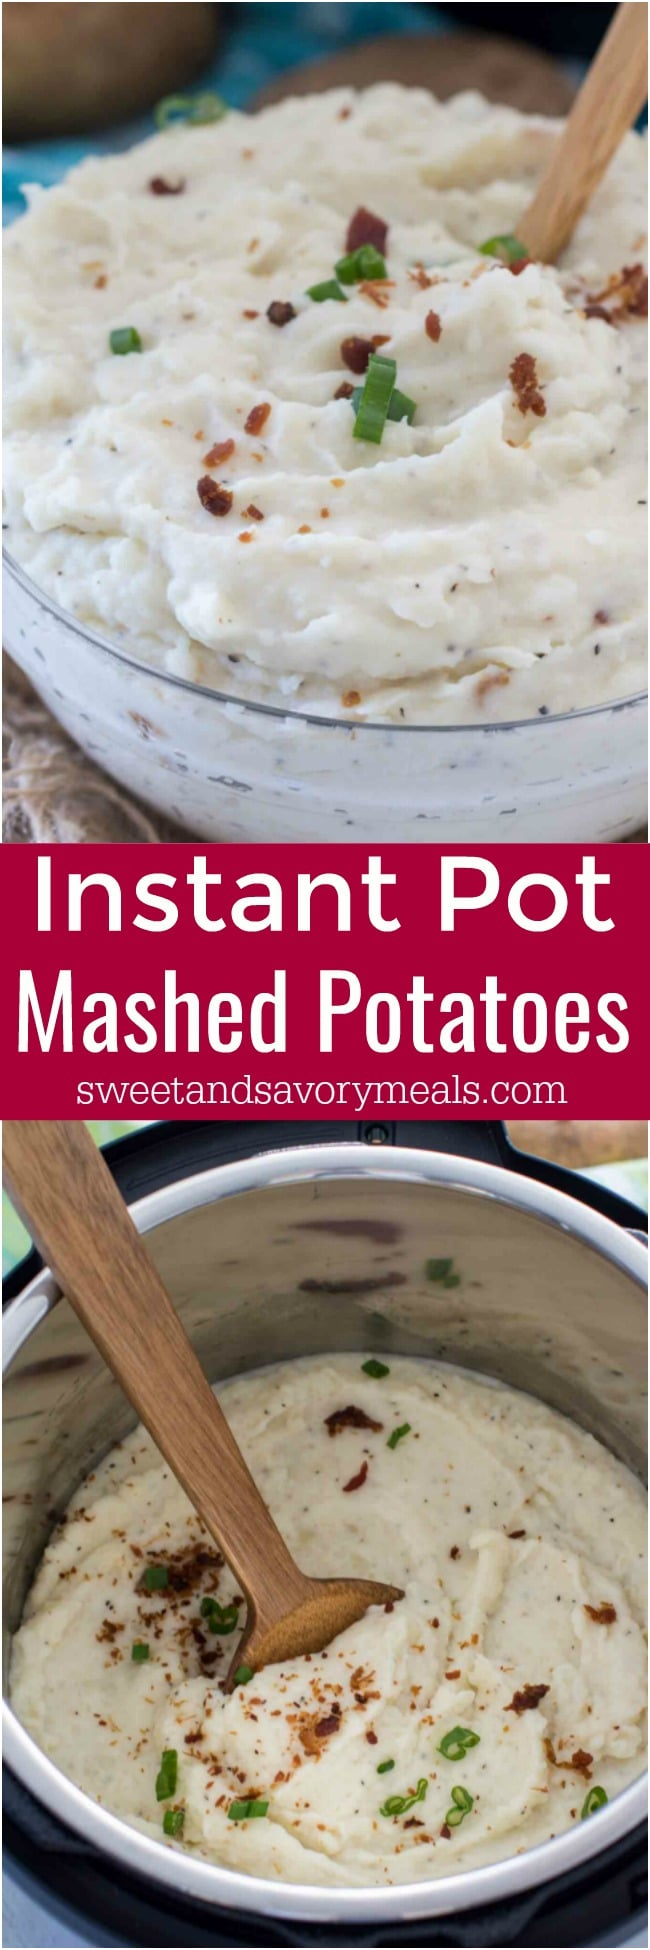 Instant Pot Mashed Potatoes are the easiest, fluffiest and creamiest mashed potatoes you will ever try. The perfect side dish with this foolproof recipe.